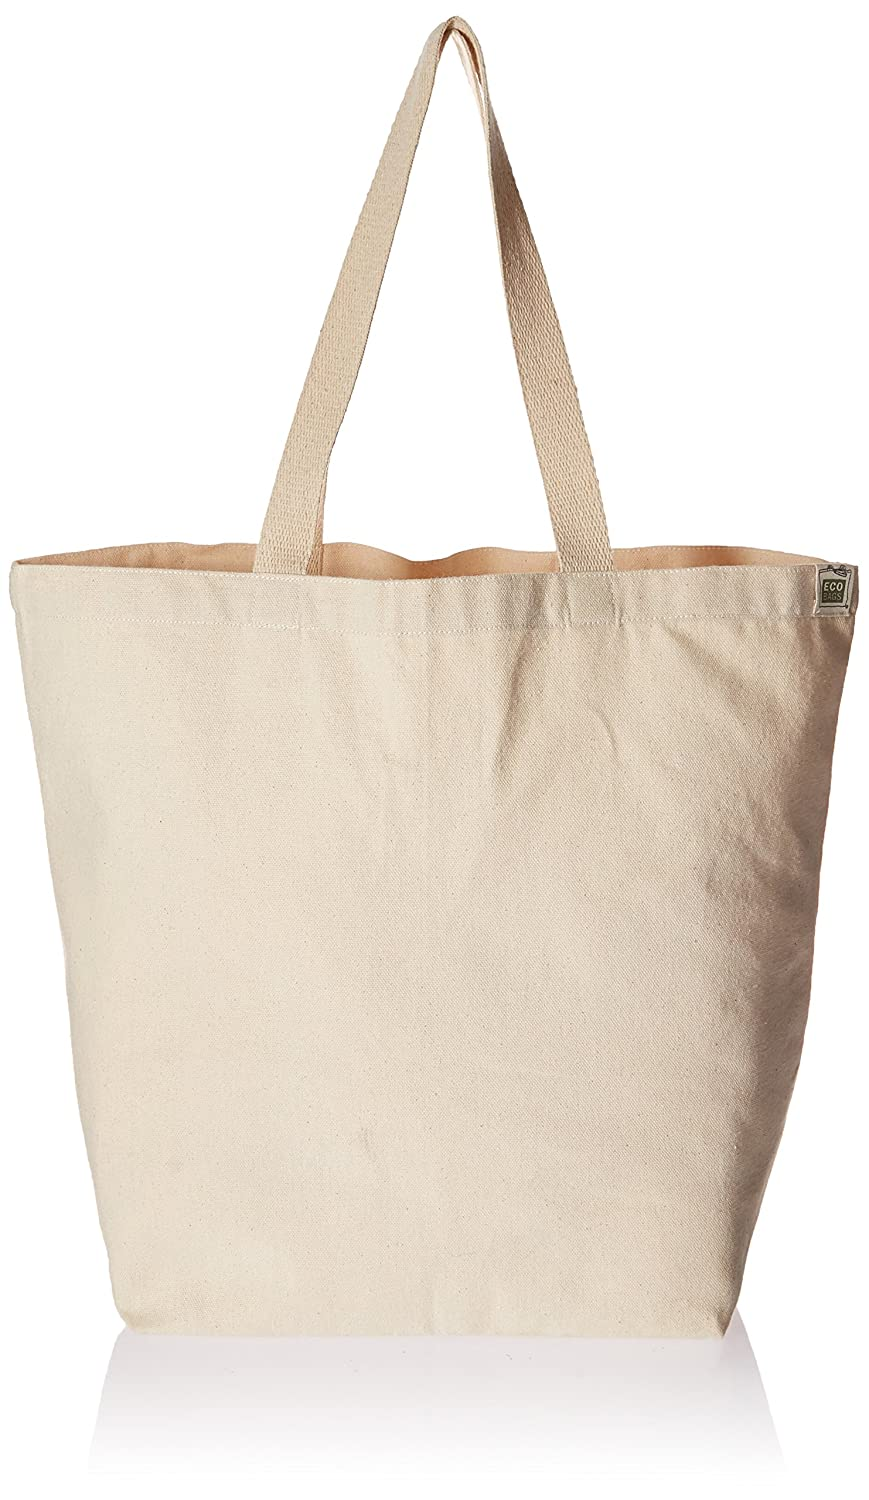 amazon com eco bags products recycled cotton tote natural home